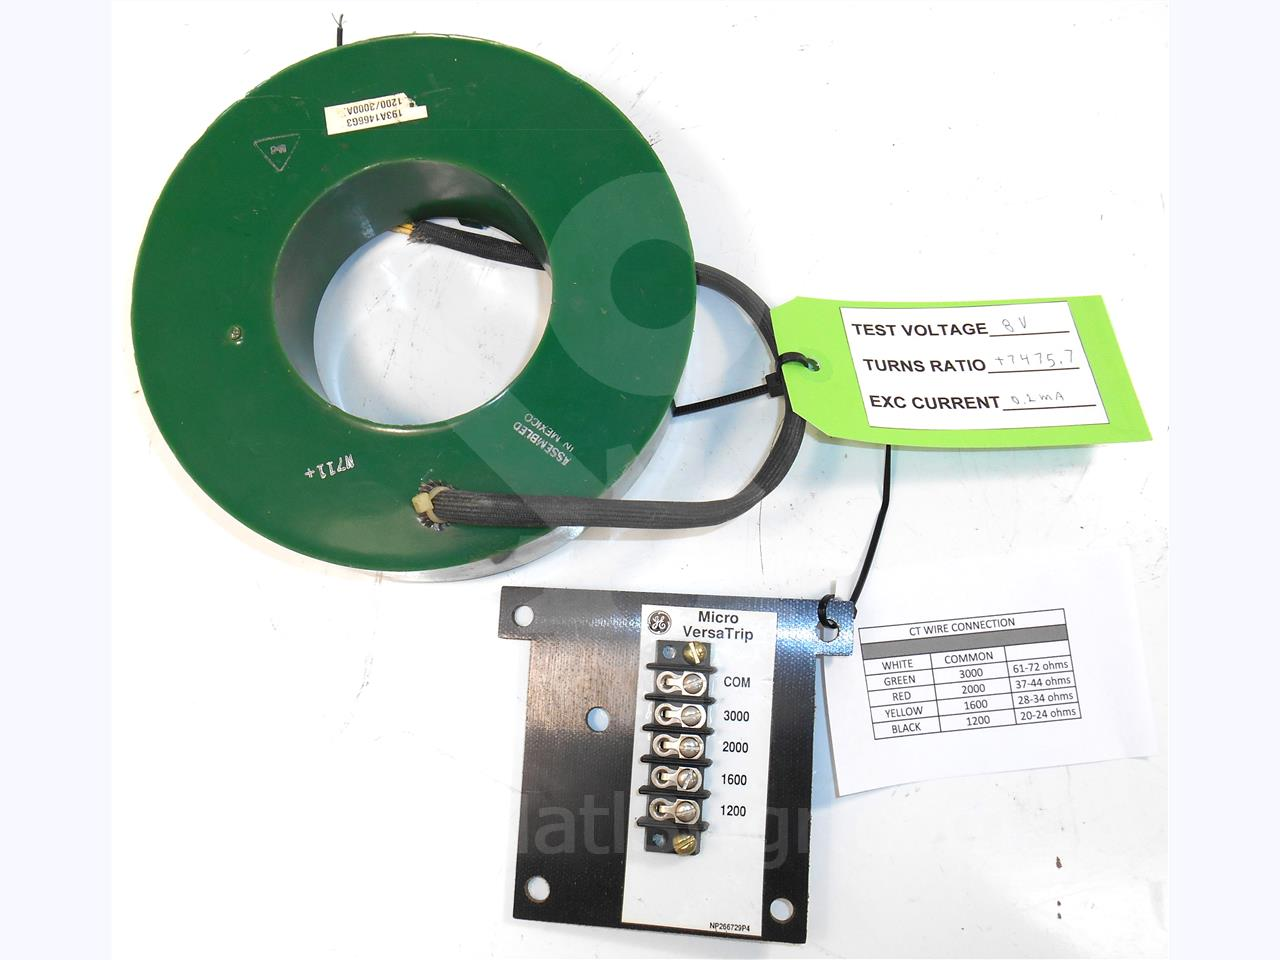 General Electric 1200-3000A GE MULTI RATIO CURRENT TRANSFORMER MVT / ENTELLIGUARD